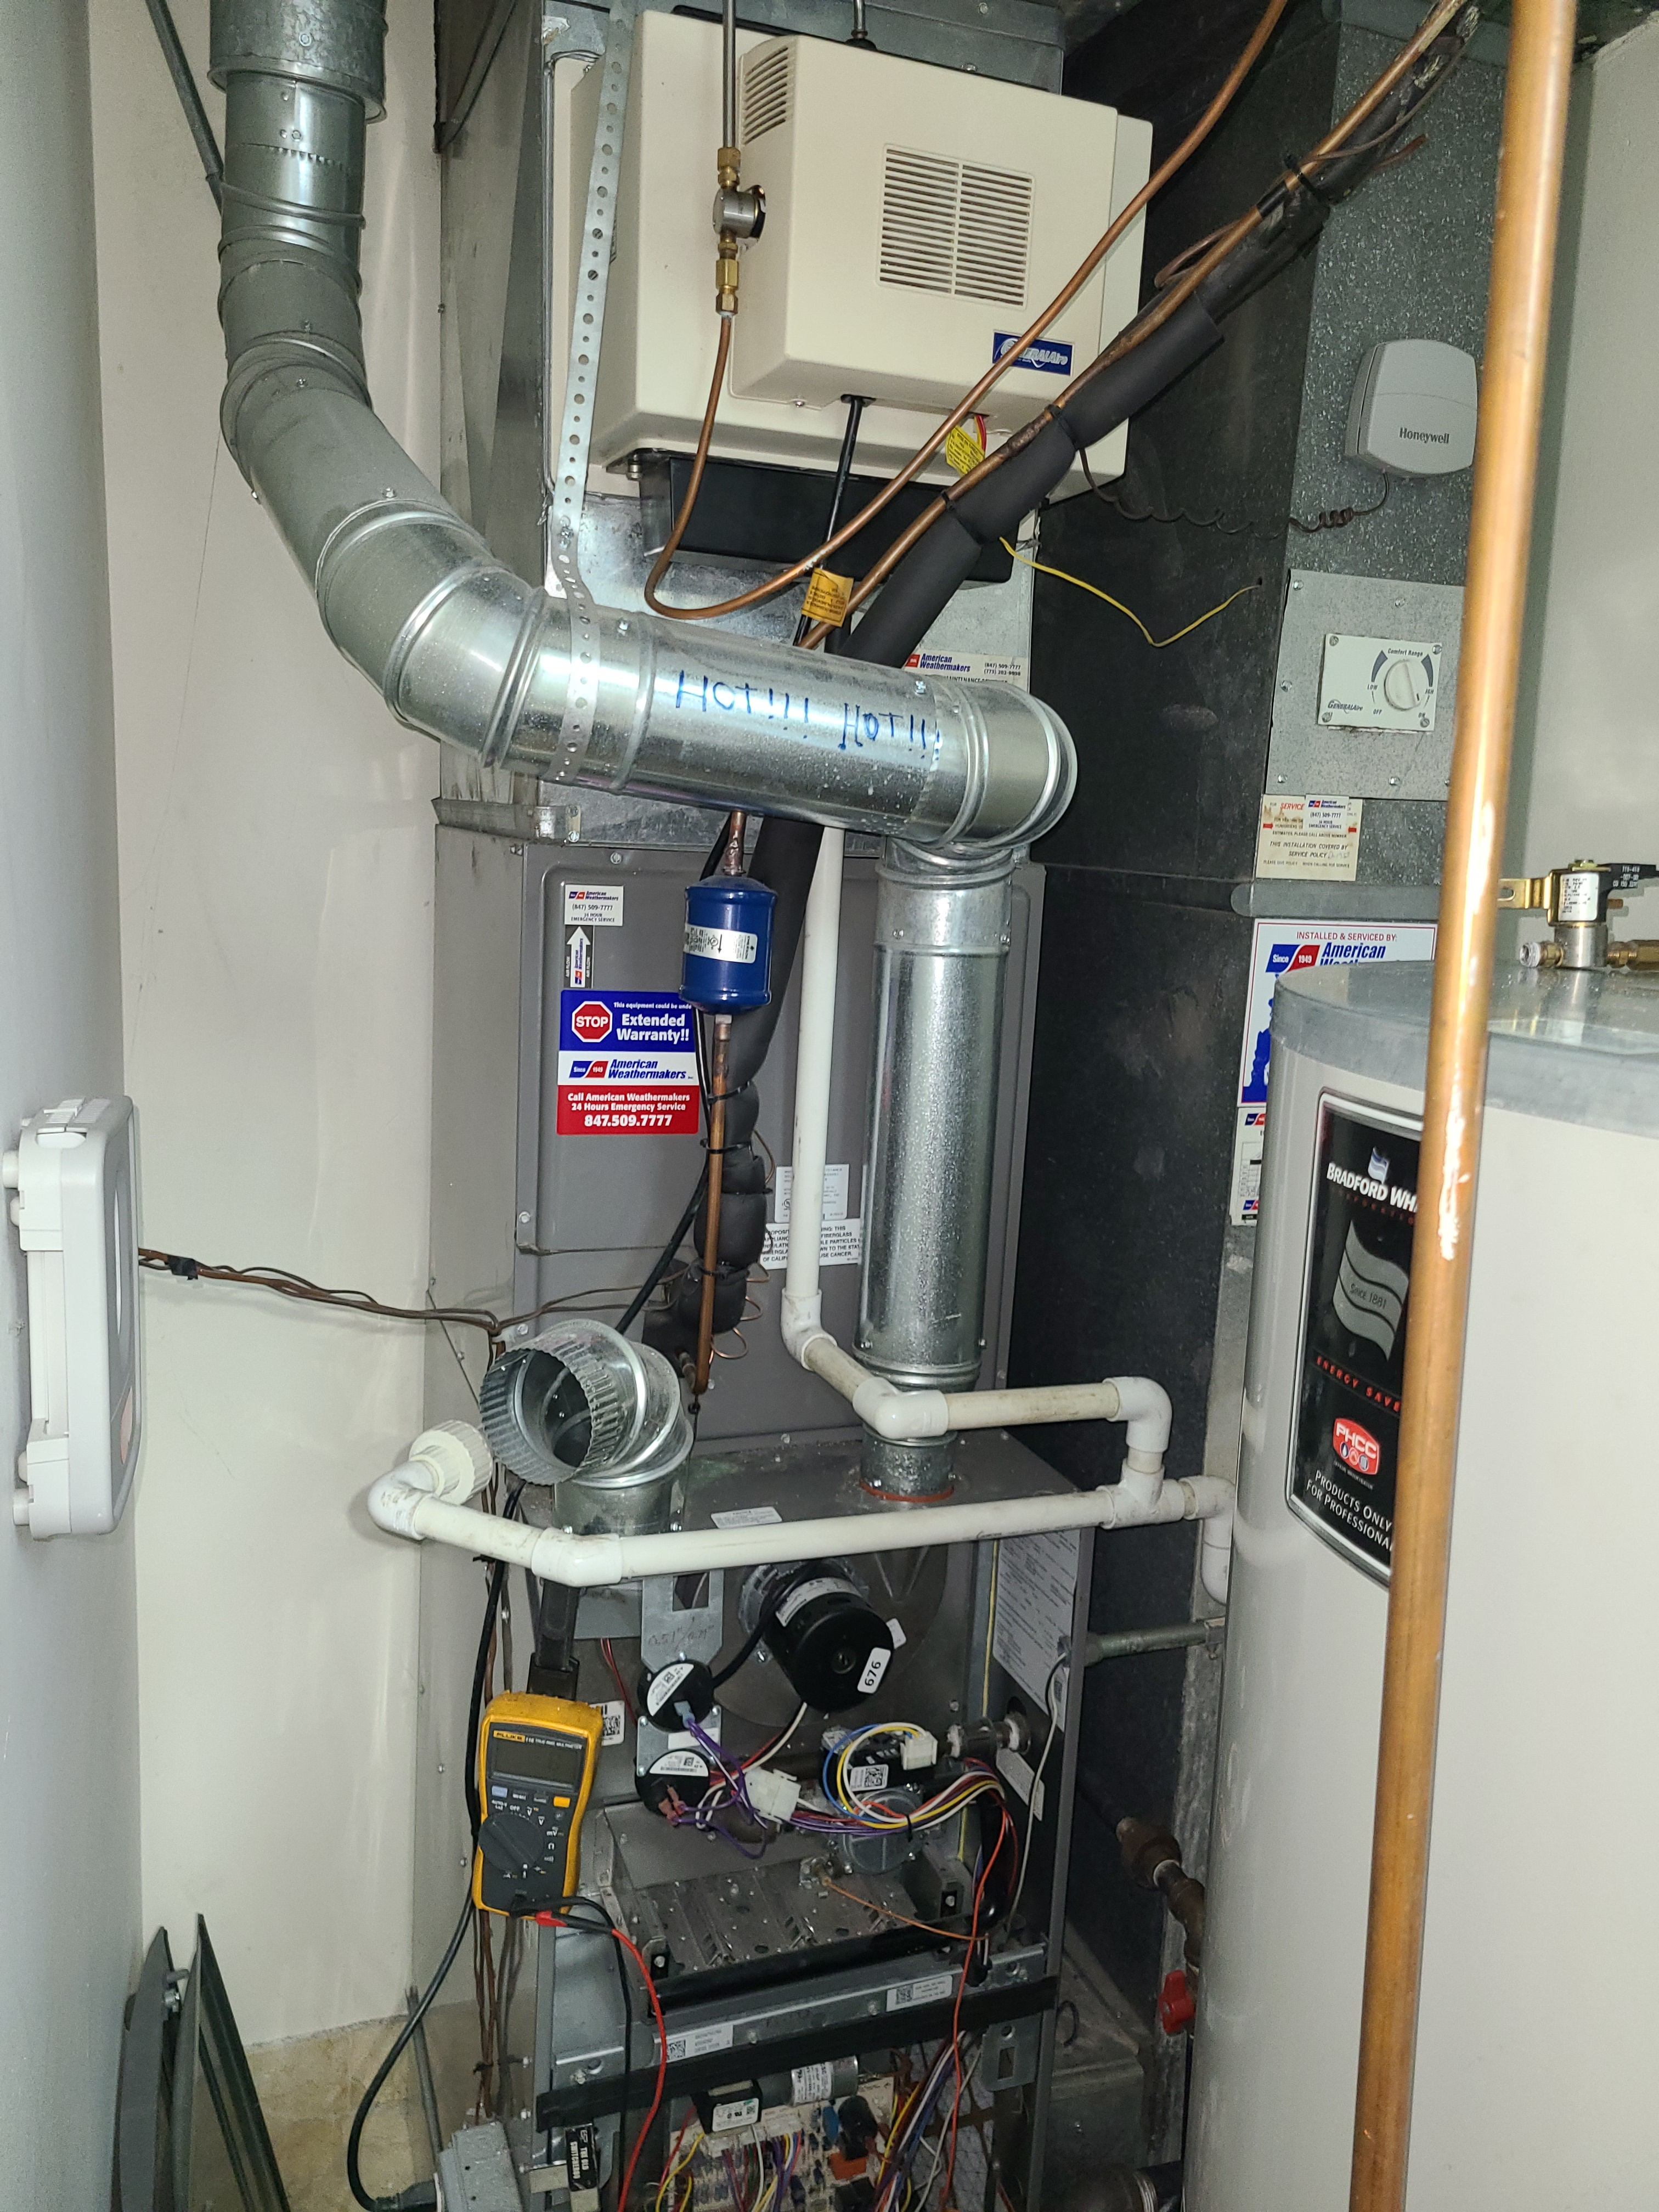 Ruud furnace,  general air humidifier fall service. System cleaned and checked and ready for winter.